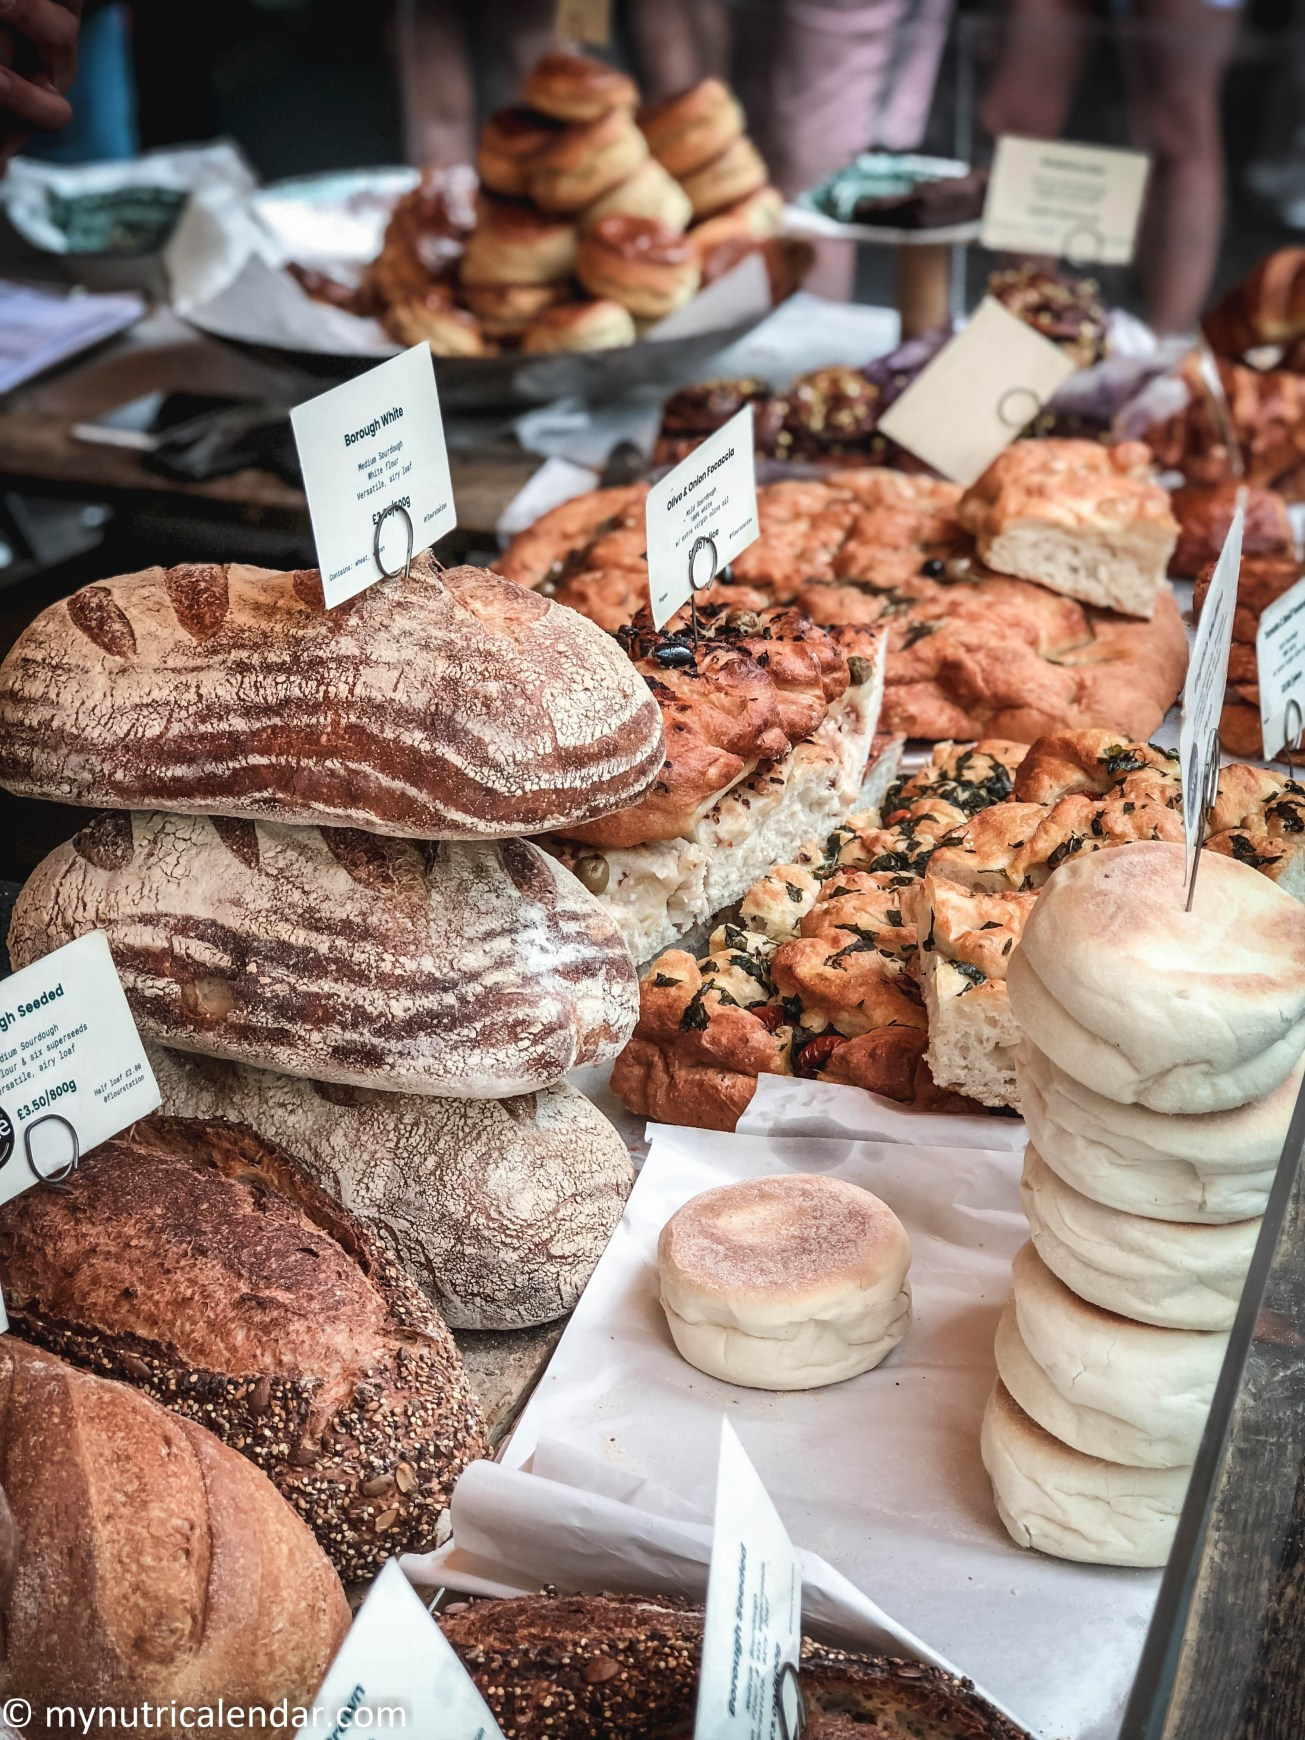 Borough Market London bakery and pastries